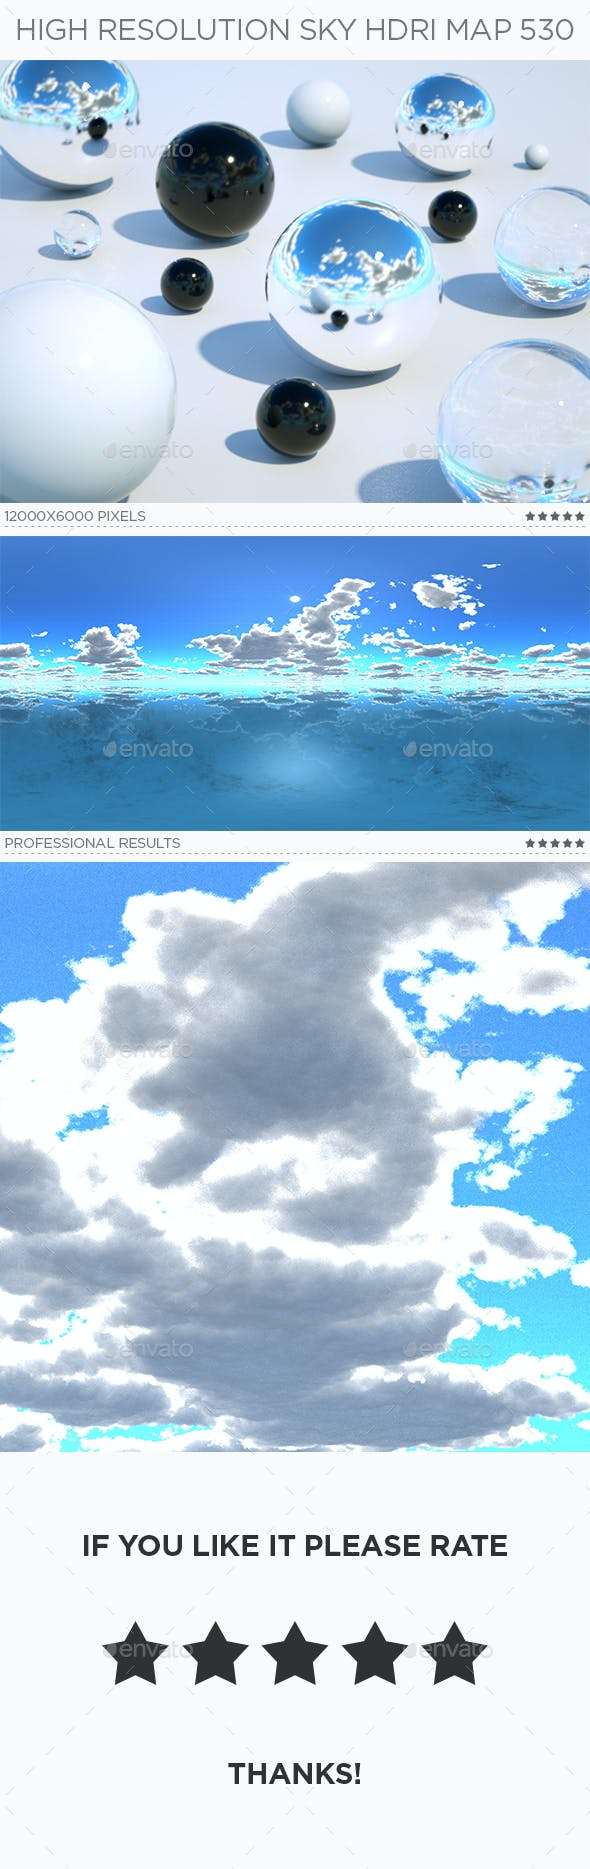 High Resolution Sky HDRi Map 530 - 3DOcean Item for Sale